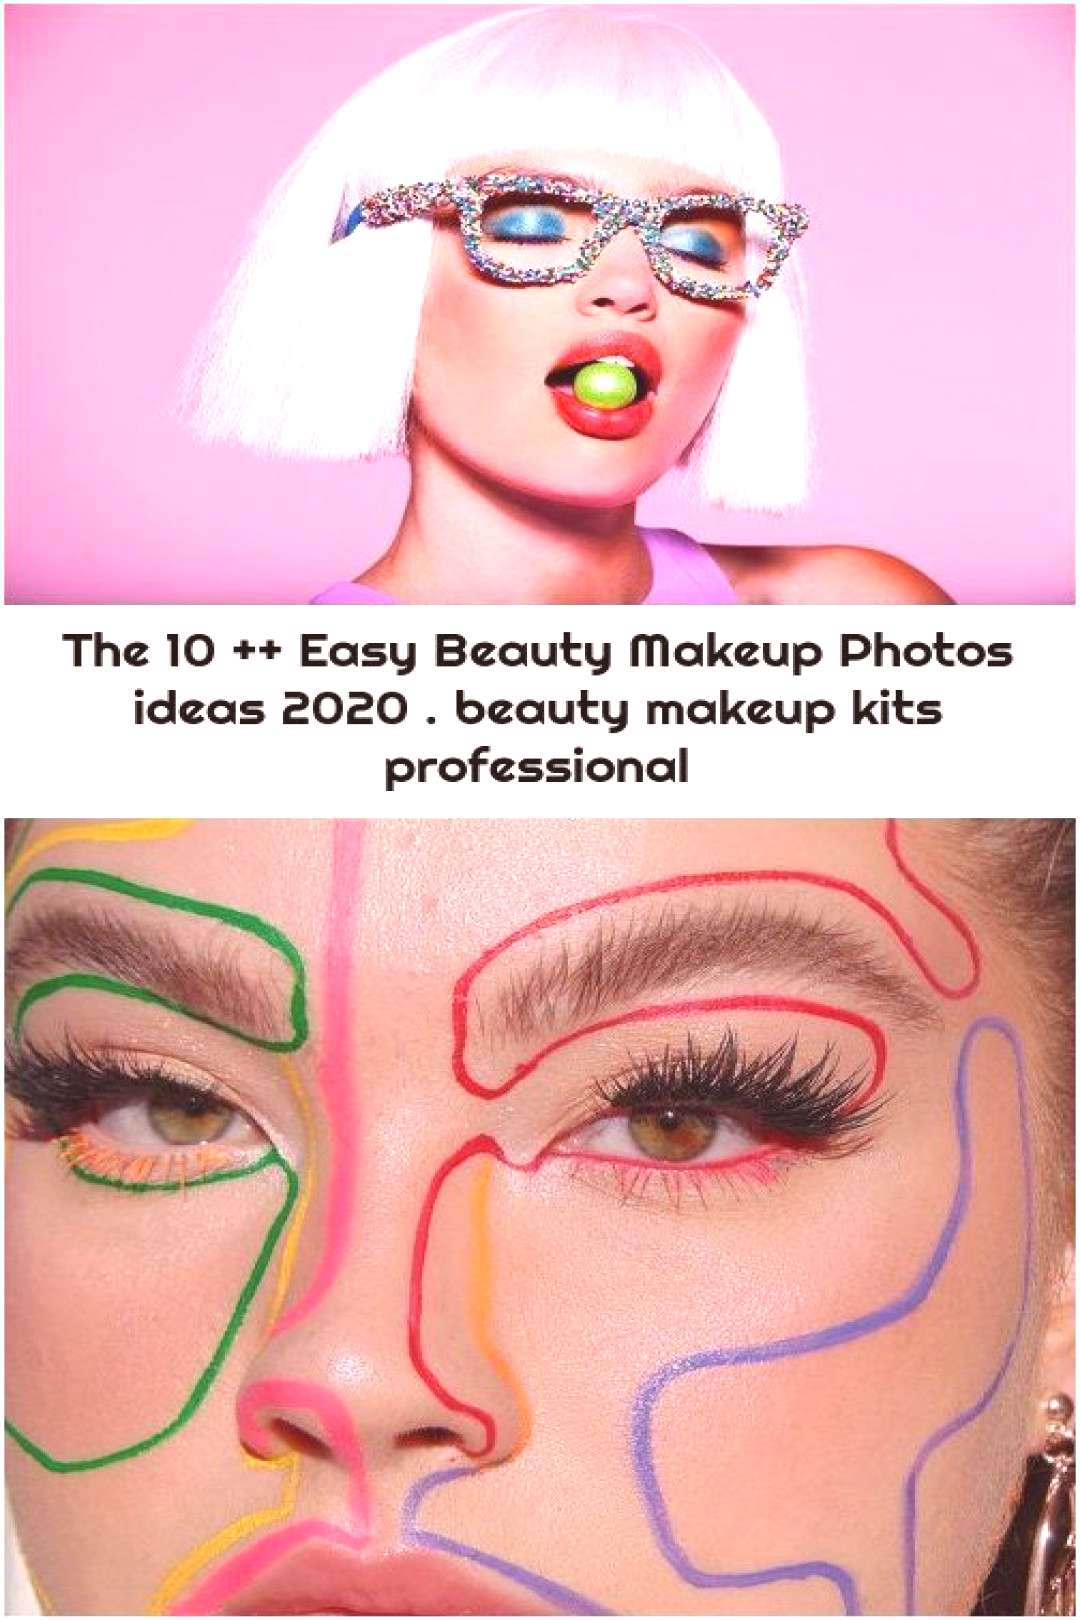 The 10 ++ Easy Beauty Makeup Photos ideas 2020 . beauty makeup kits professional 1. (notitle) 2. Lo